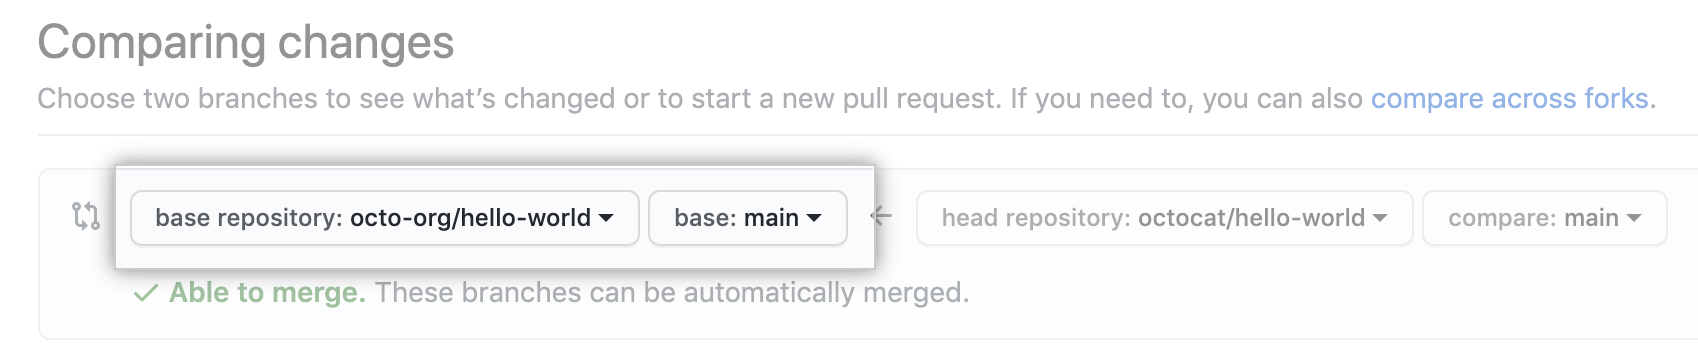 Drop-down menus for choosing the base fork and branch